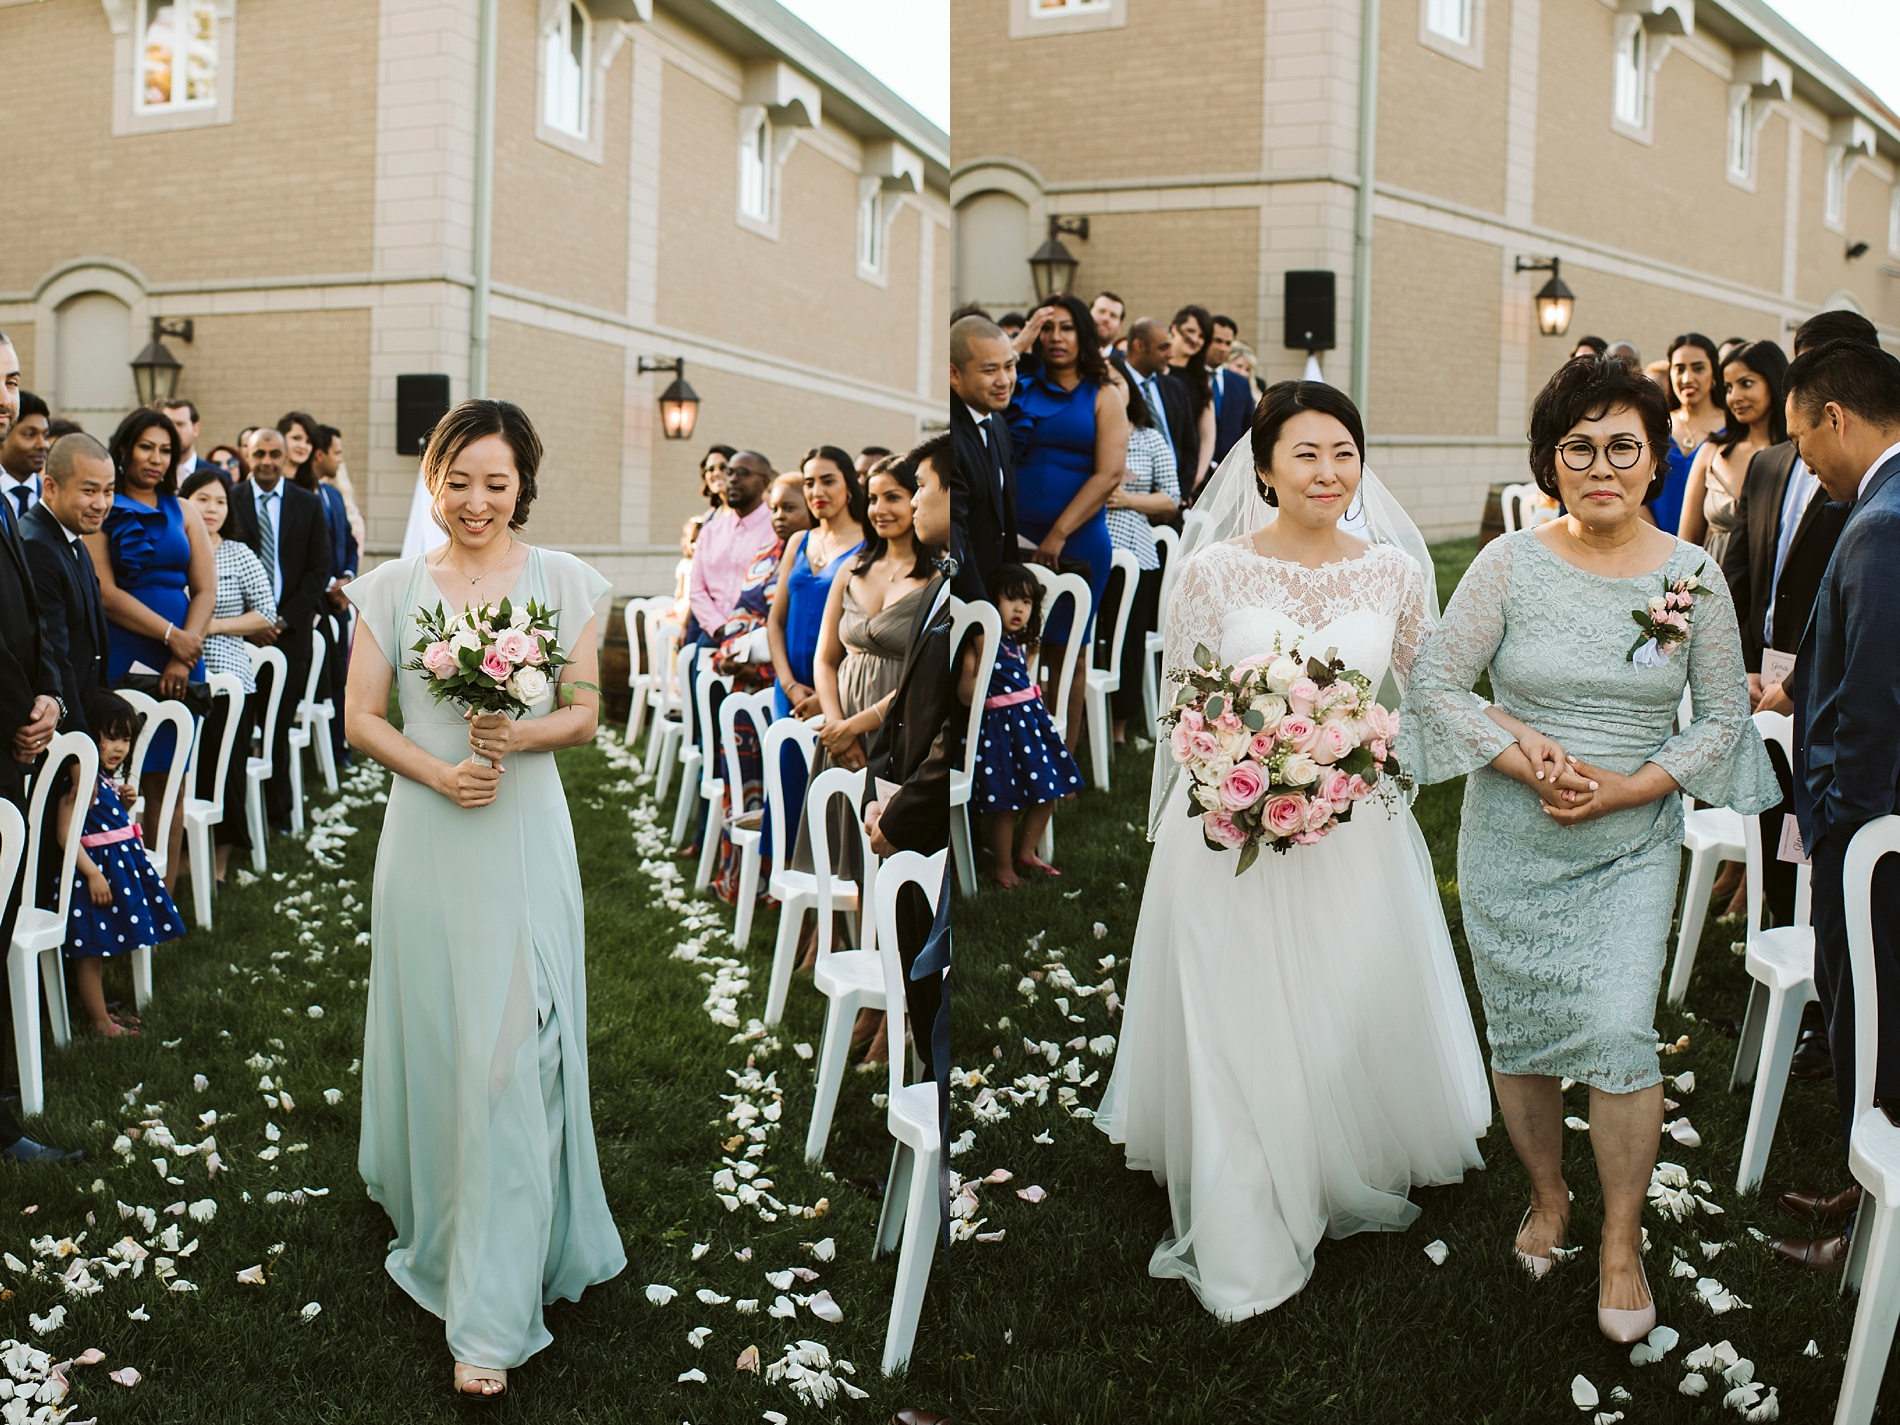 Best_Toronto_Wedding_Photographer_Niagara_Chateaux_des_Charmes_0037.jpg